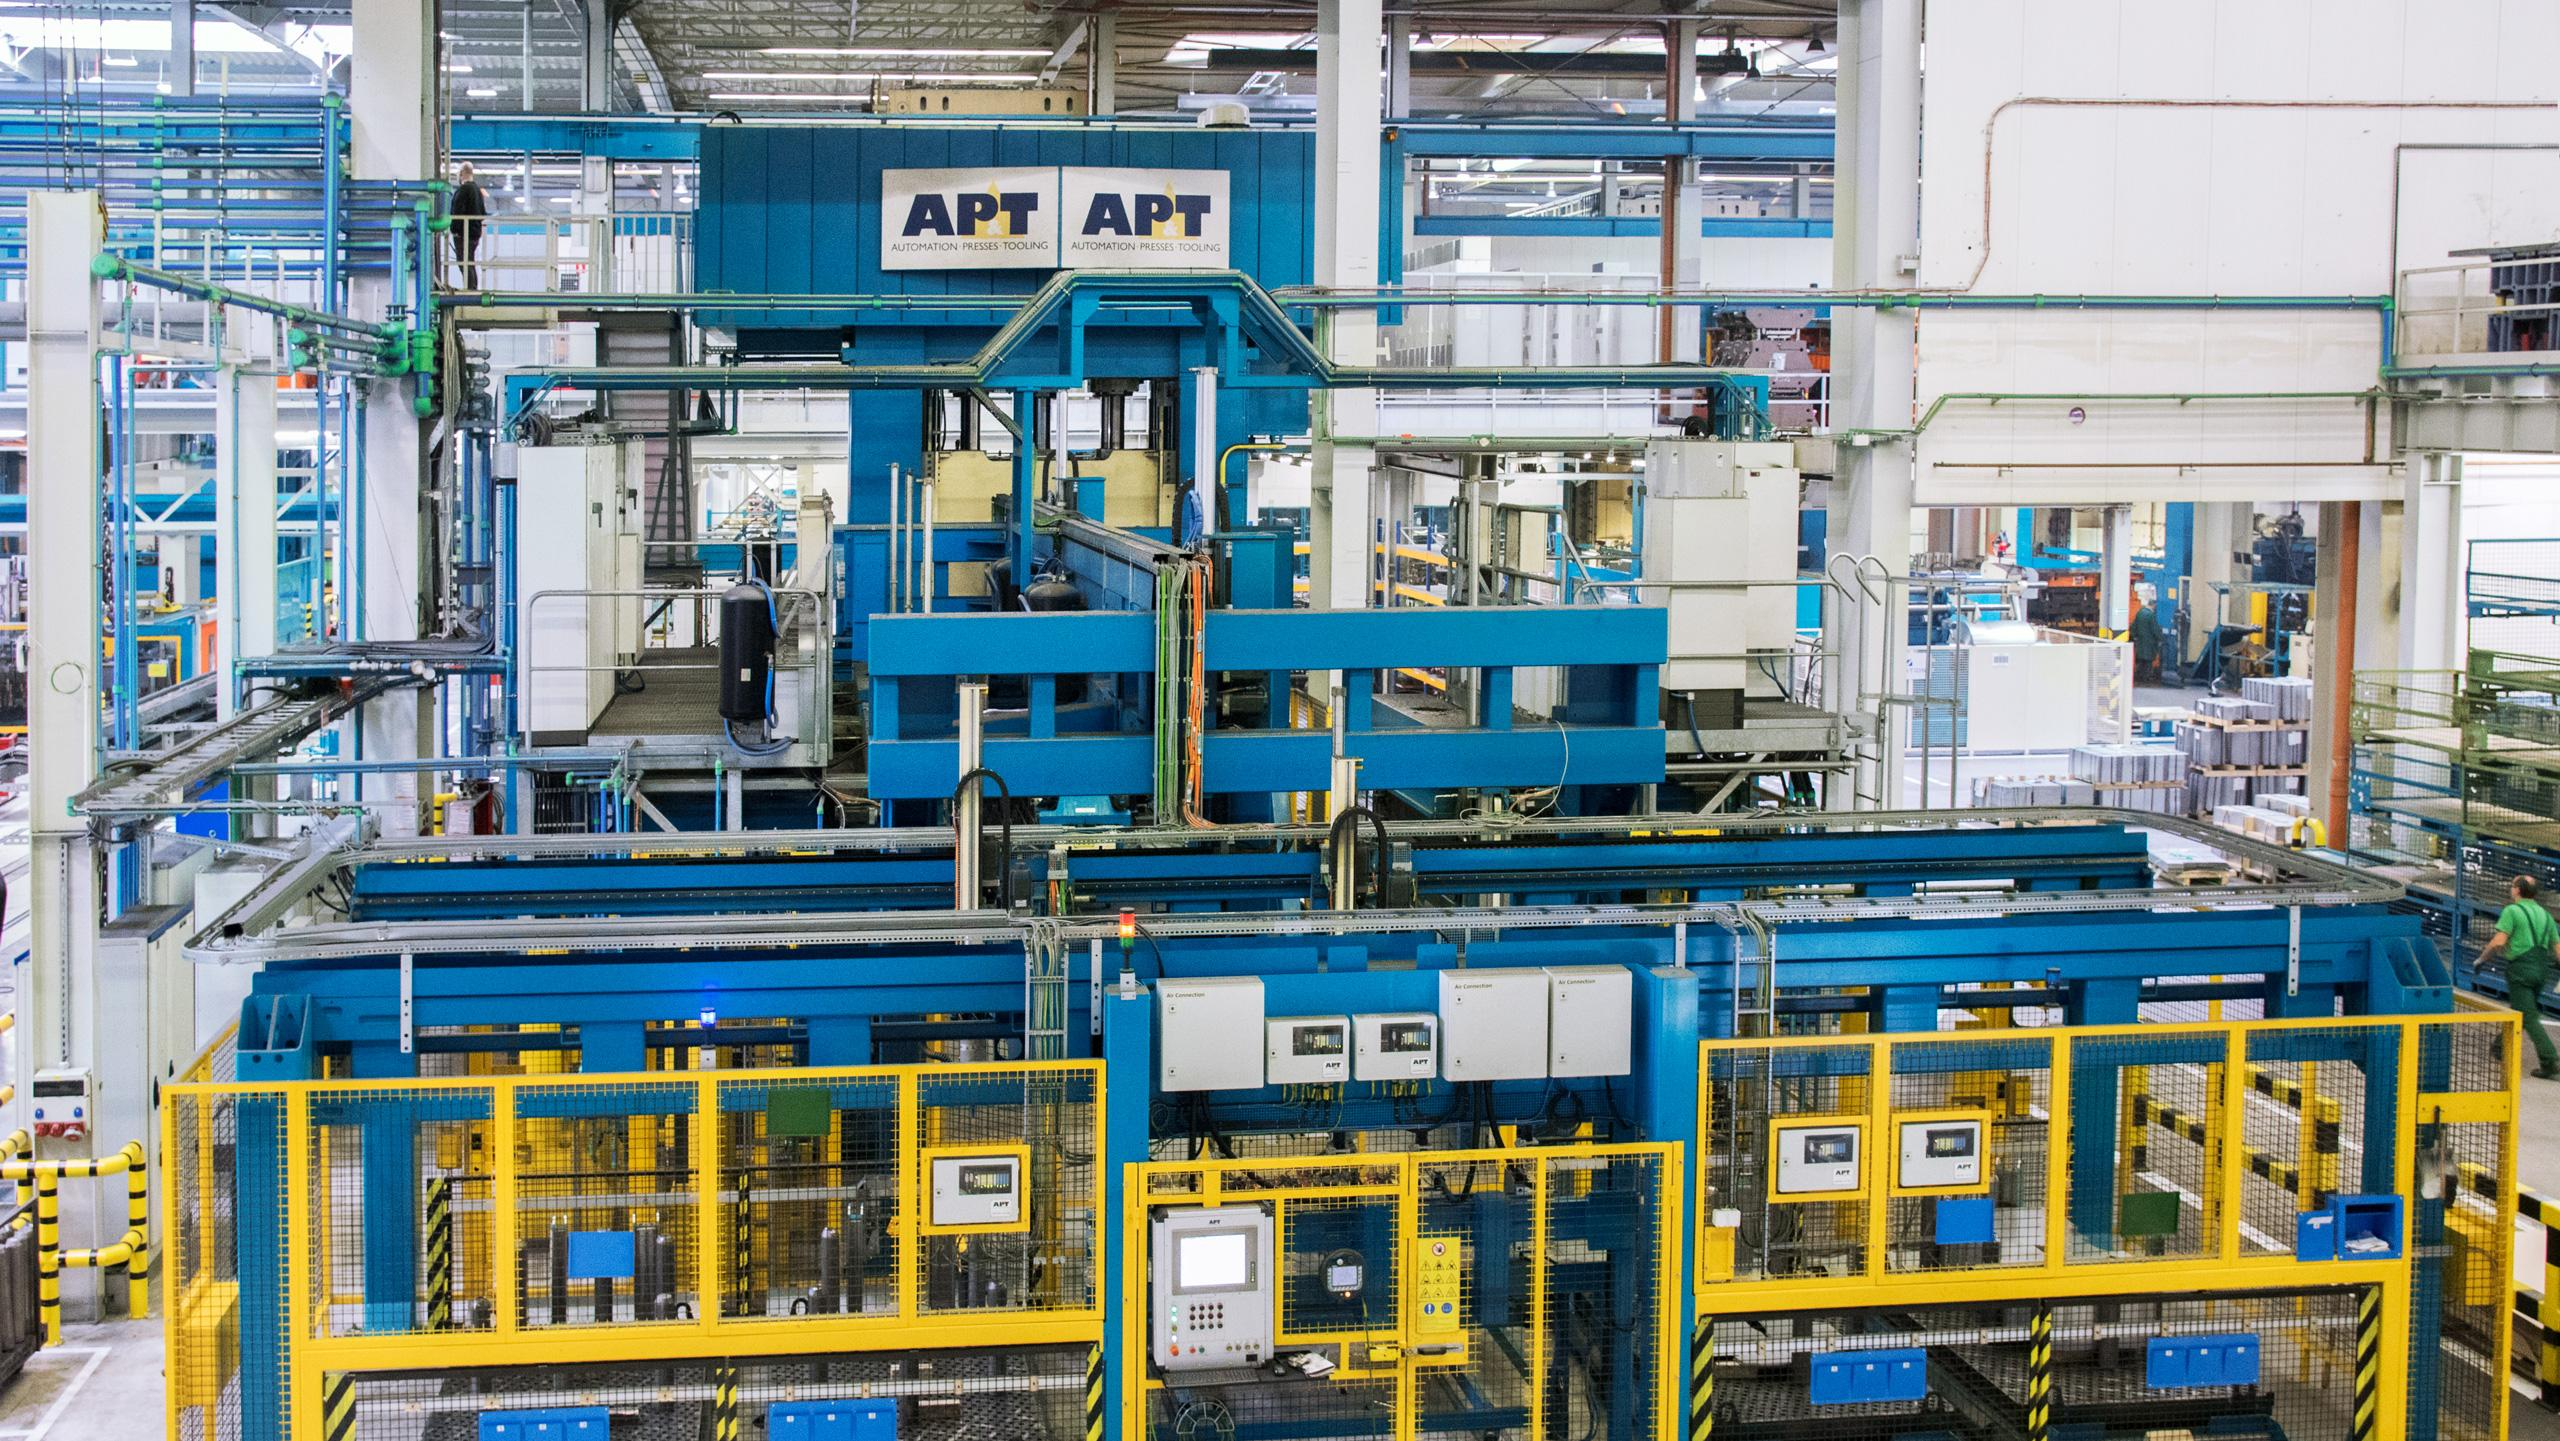 So far AP&T has installed three complete press hardening lines at Gedia's facilities in Germany and Poland.